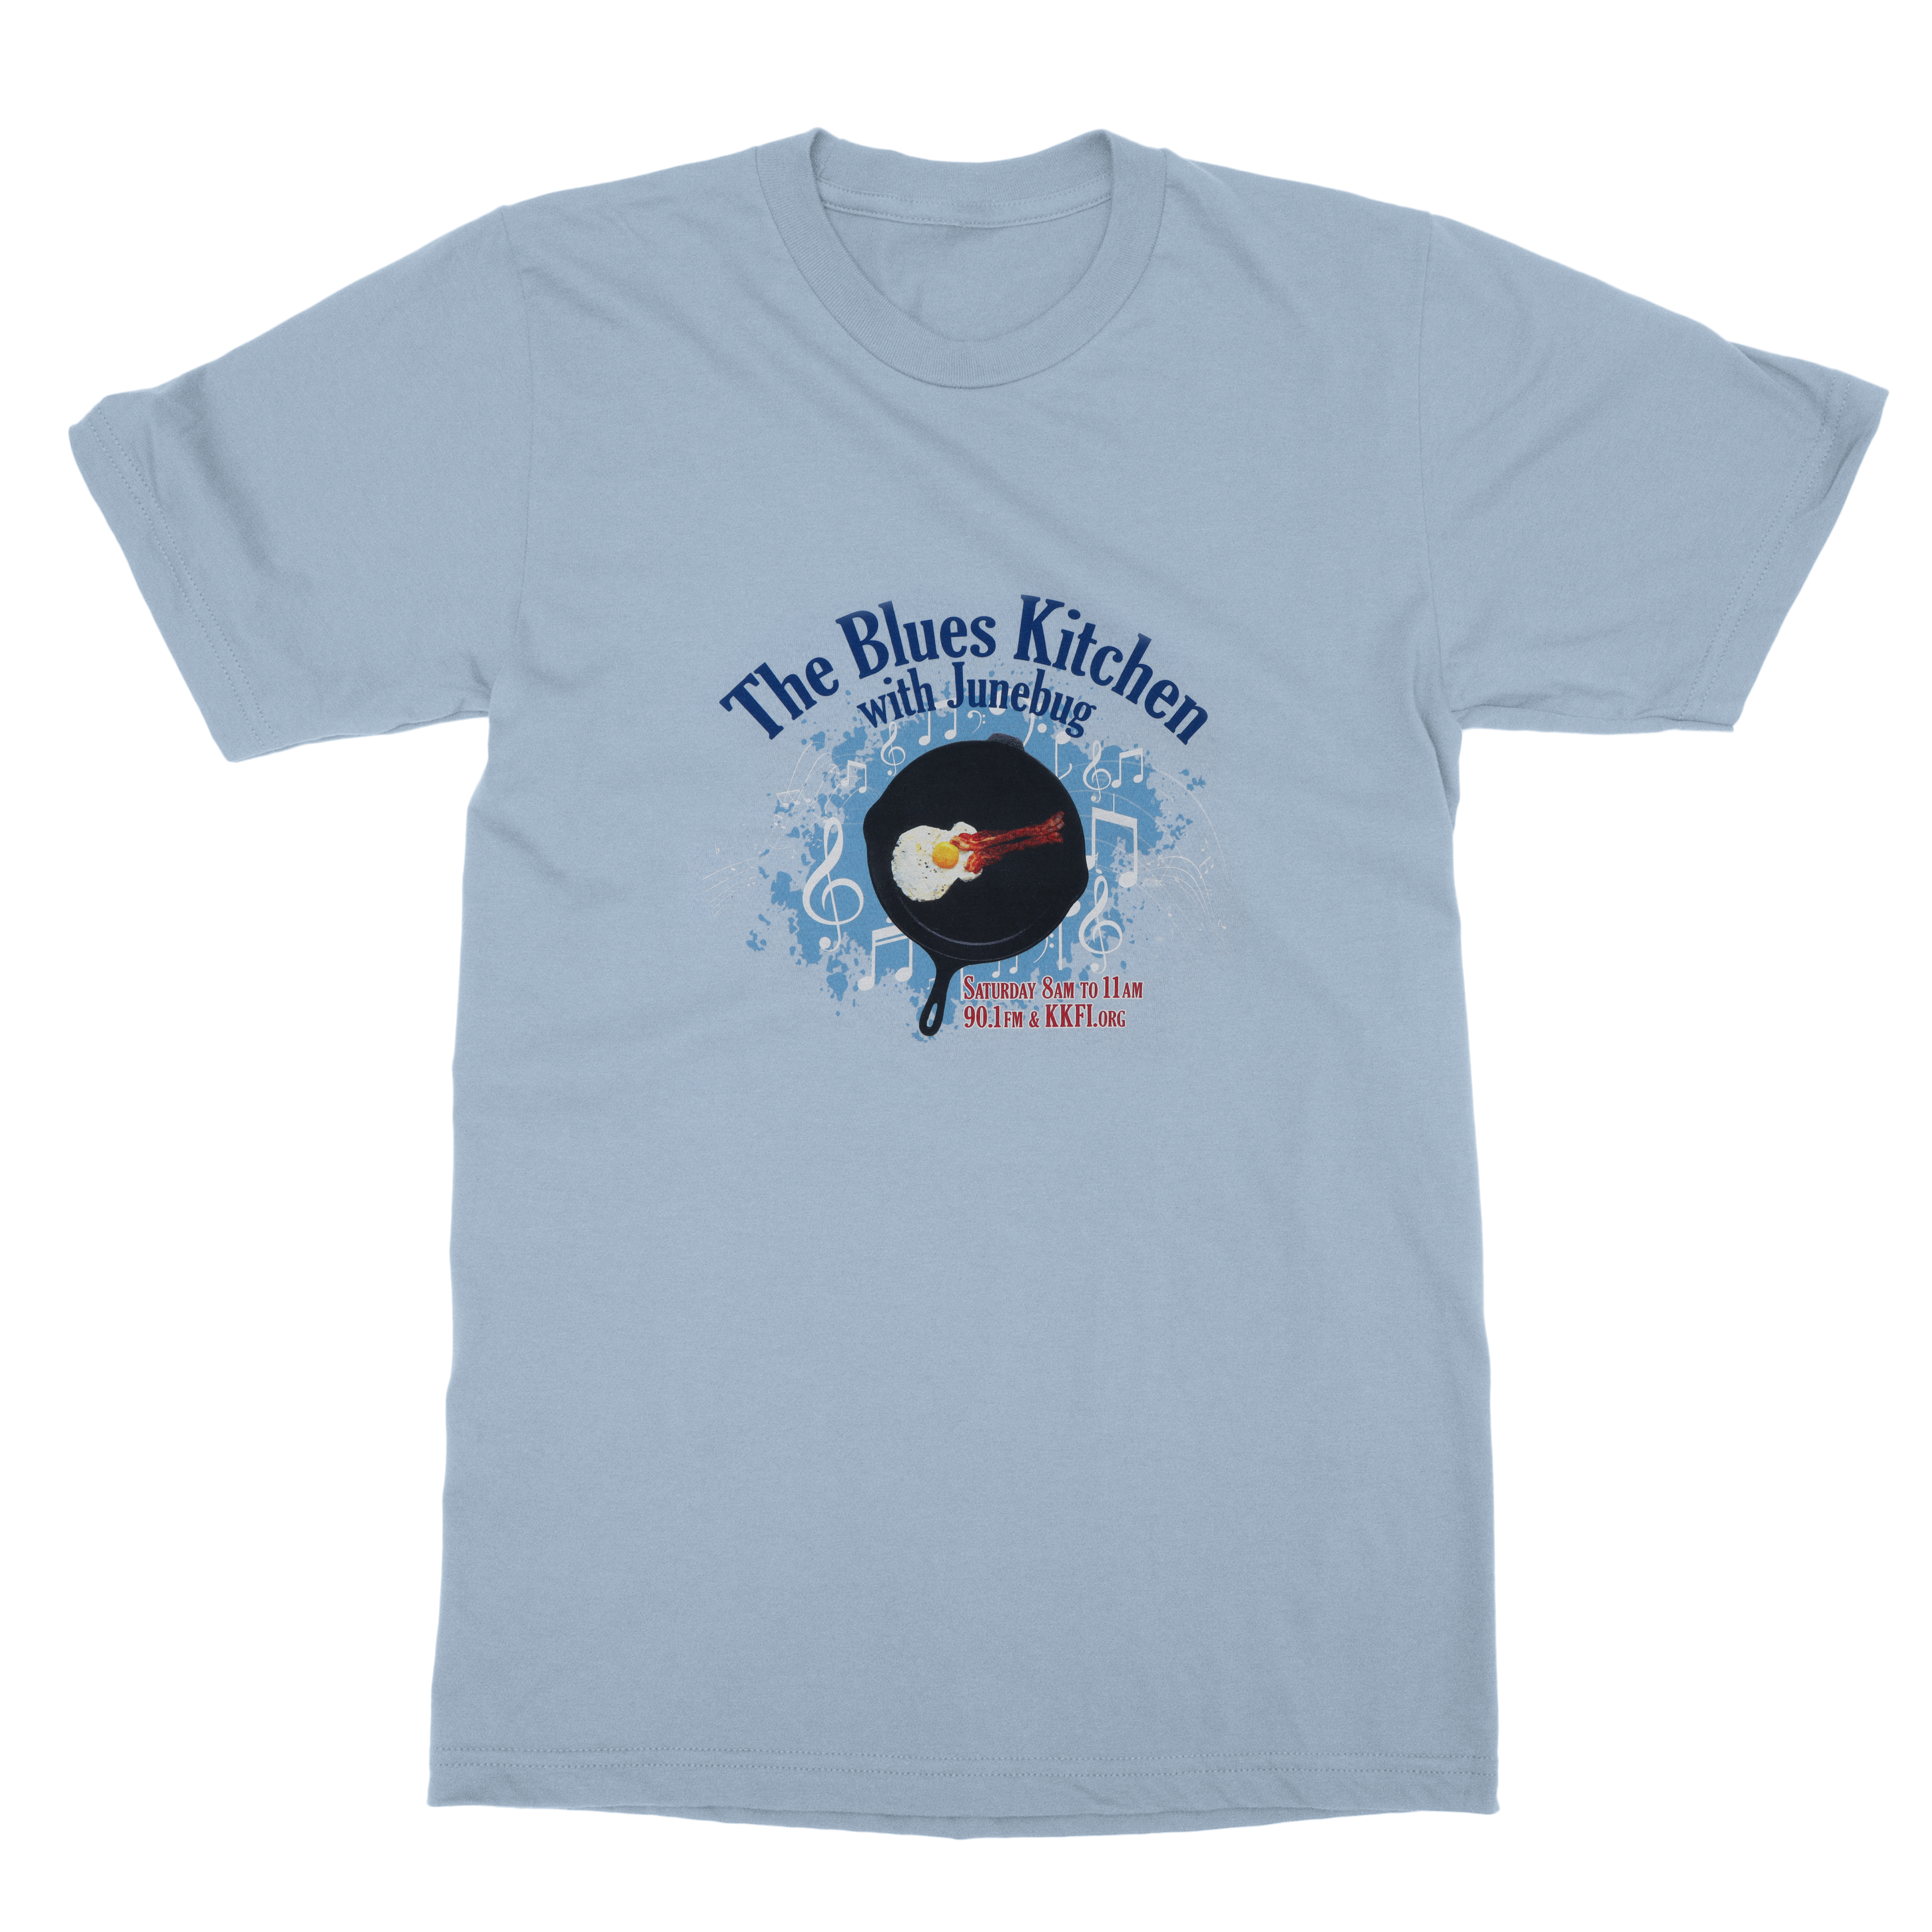 KKFI | Blues Kitchen 20th Anniversary T-Shirt - Light Blue